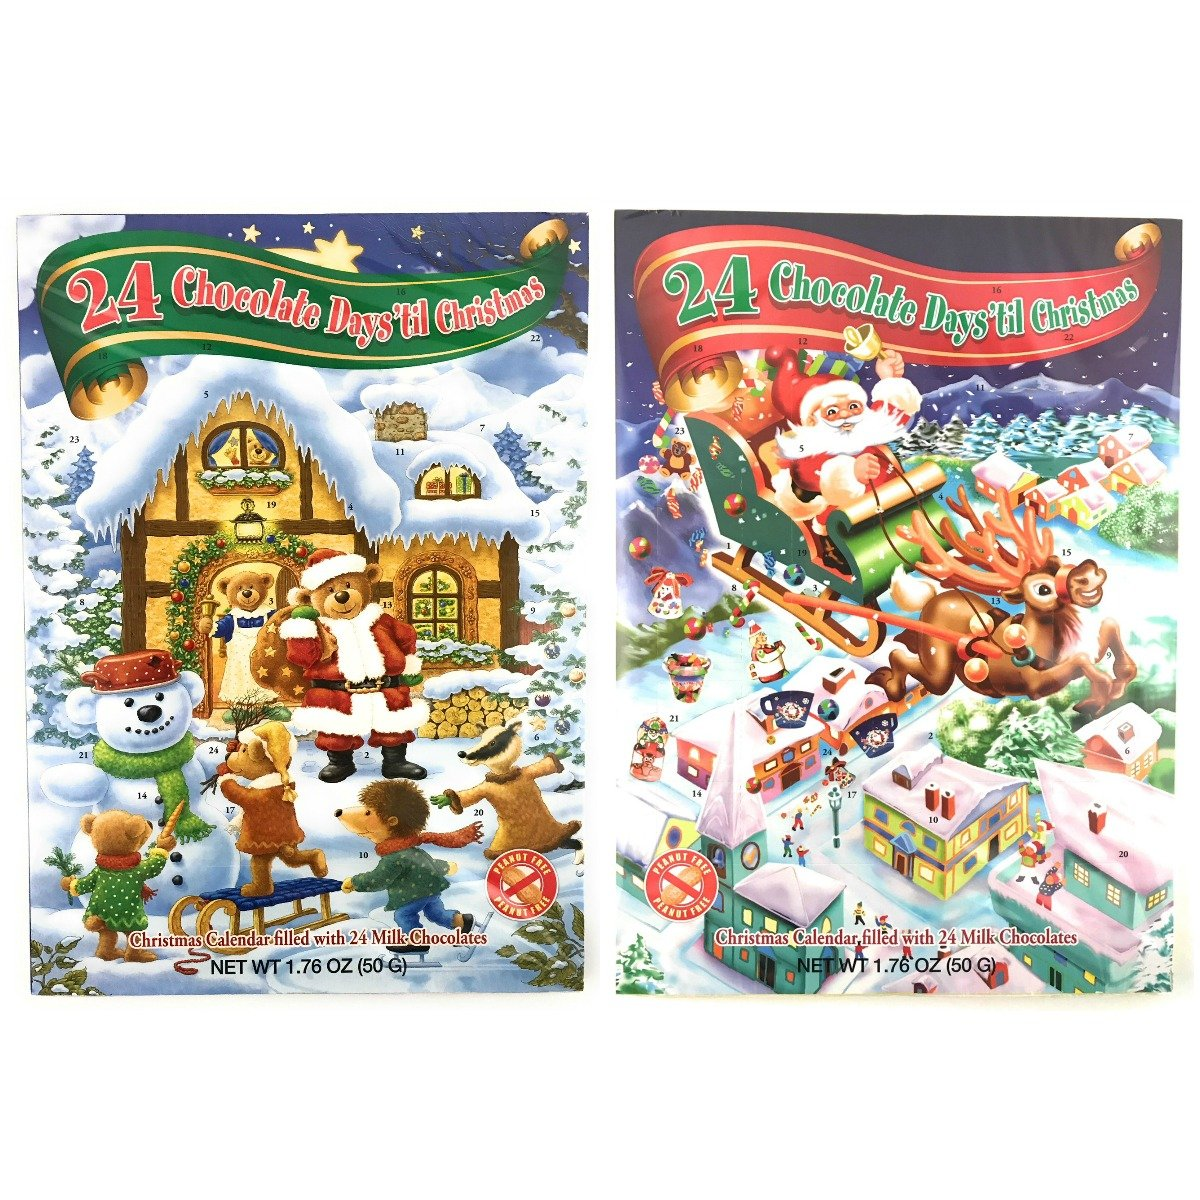 Advent Calendar - 24 Chocolate Days till Christmas Advent Calendar (Winter Wonderland Pack)